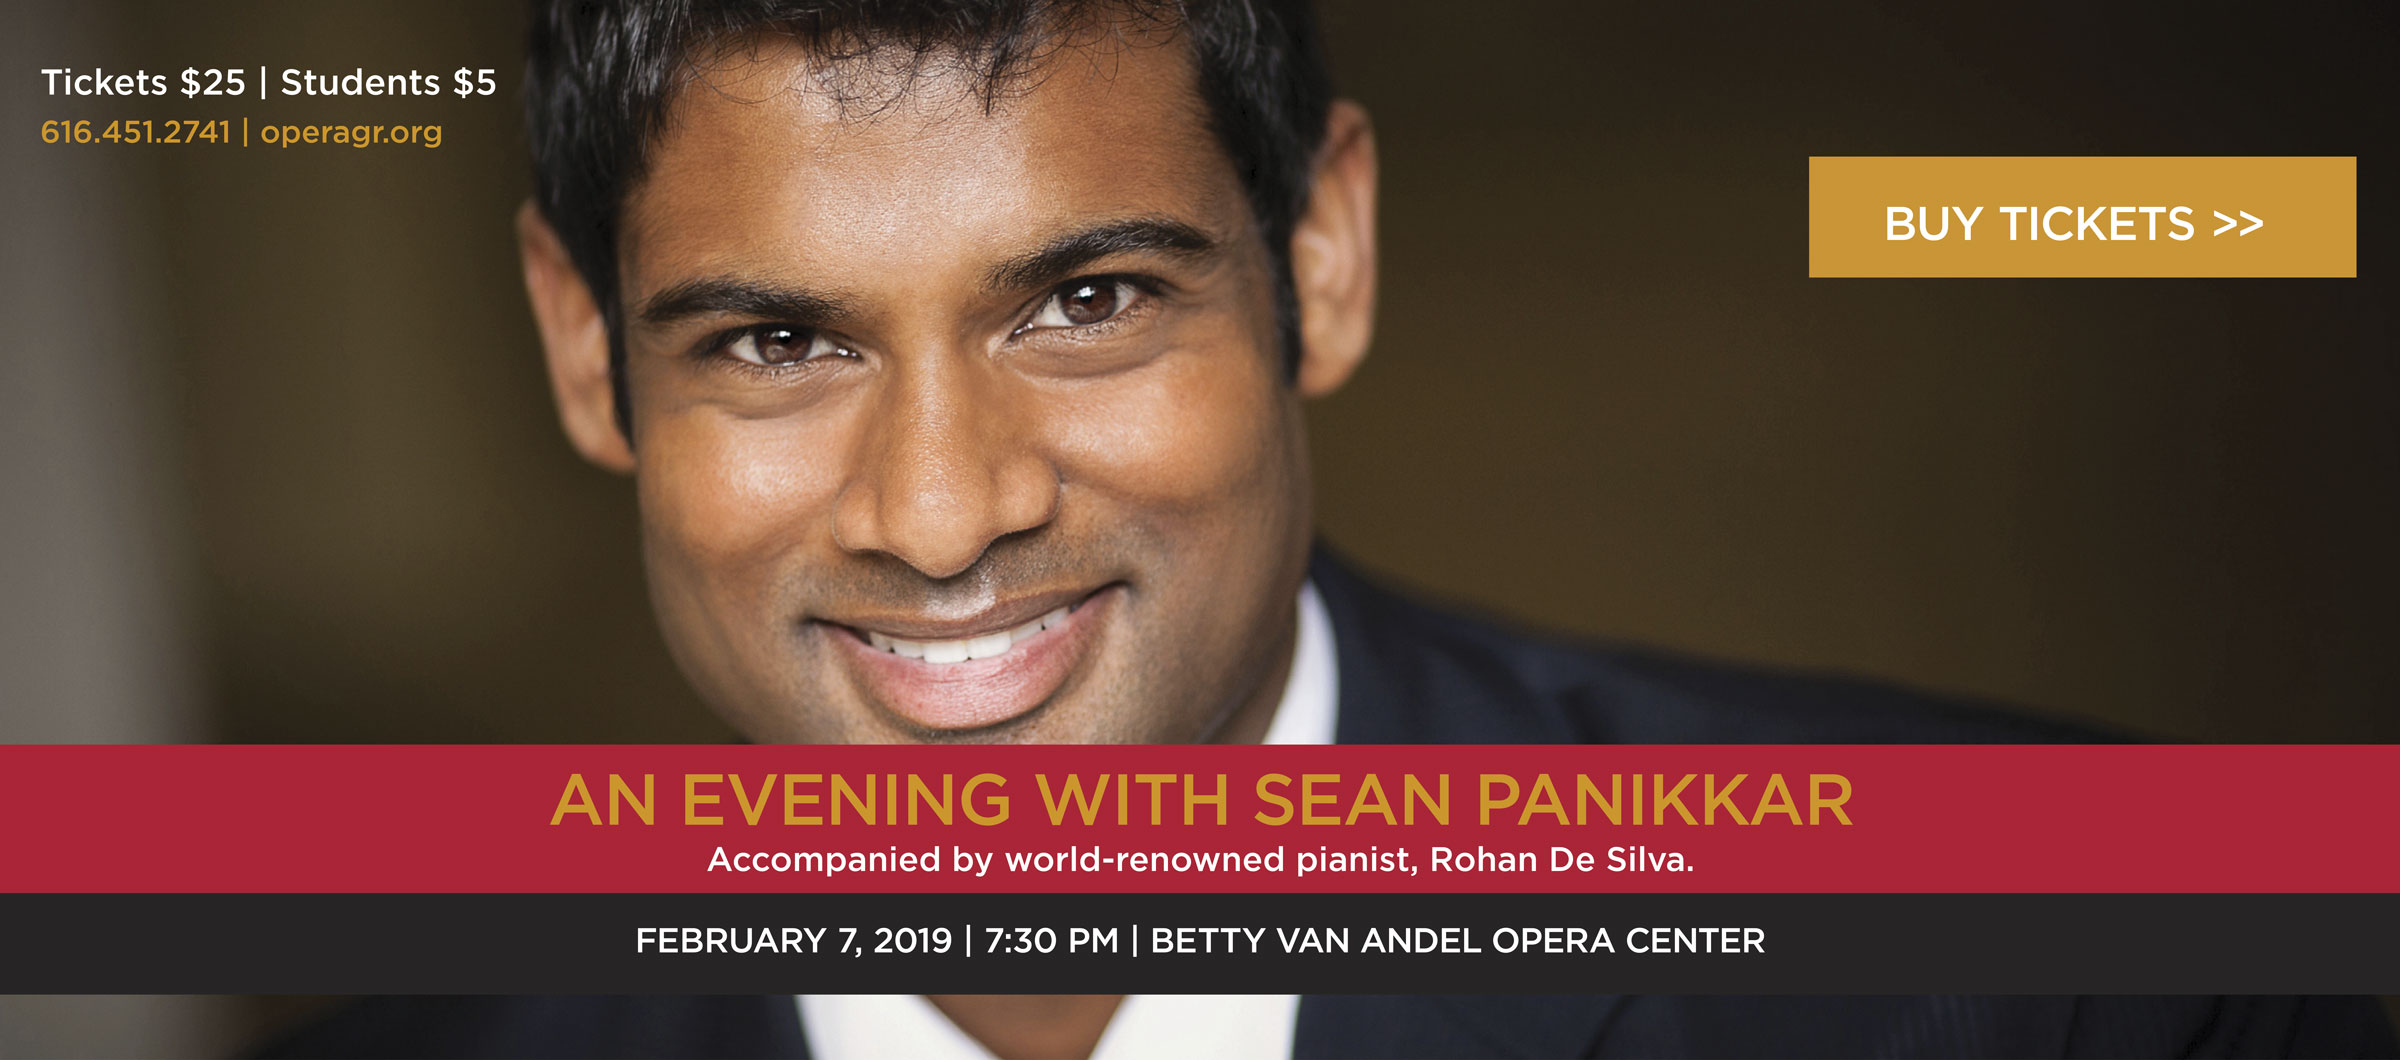 An evening with Sean Panikkar, accompanied by world-renowned pianist Rohan de Silva. February 7, 2019, 7:30 PM, Betty Van Andel Opera Center. Tickets $25, Students $5. Call 616-451-2741 for tickets.